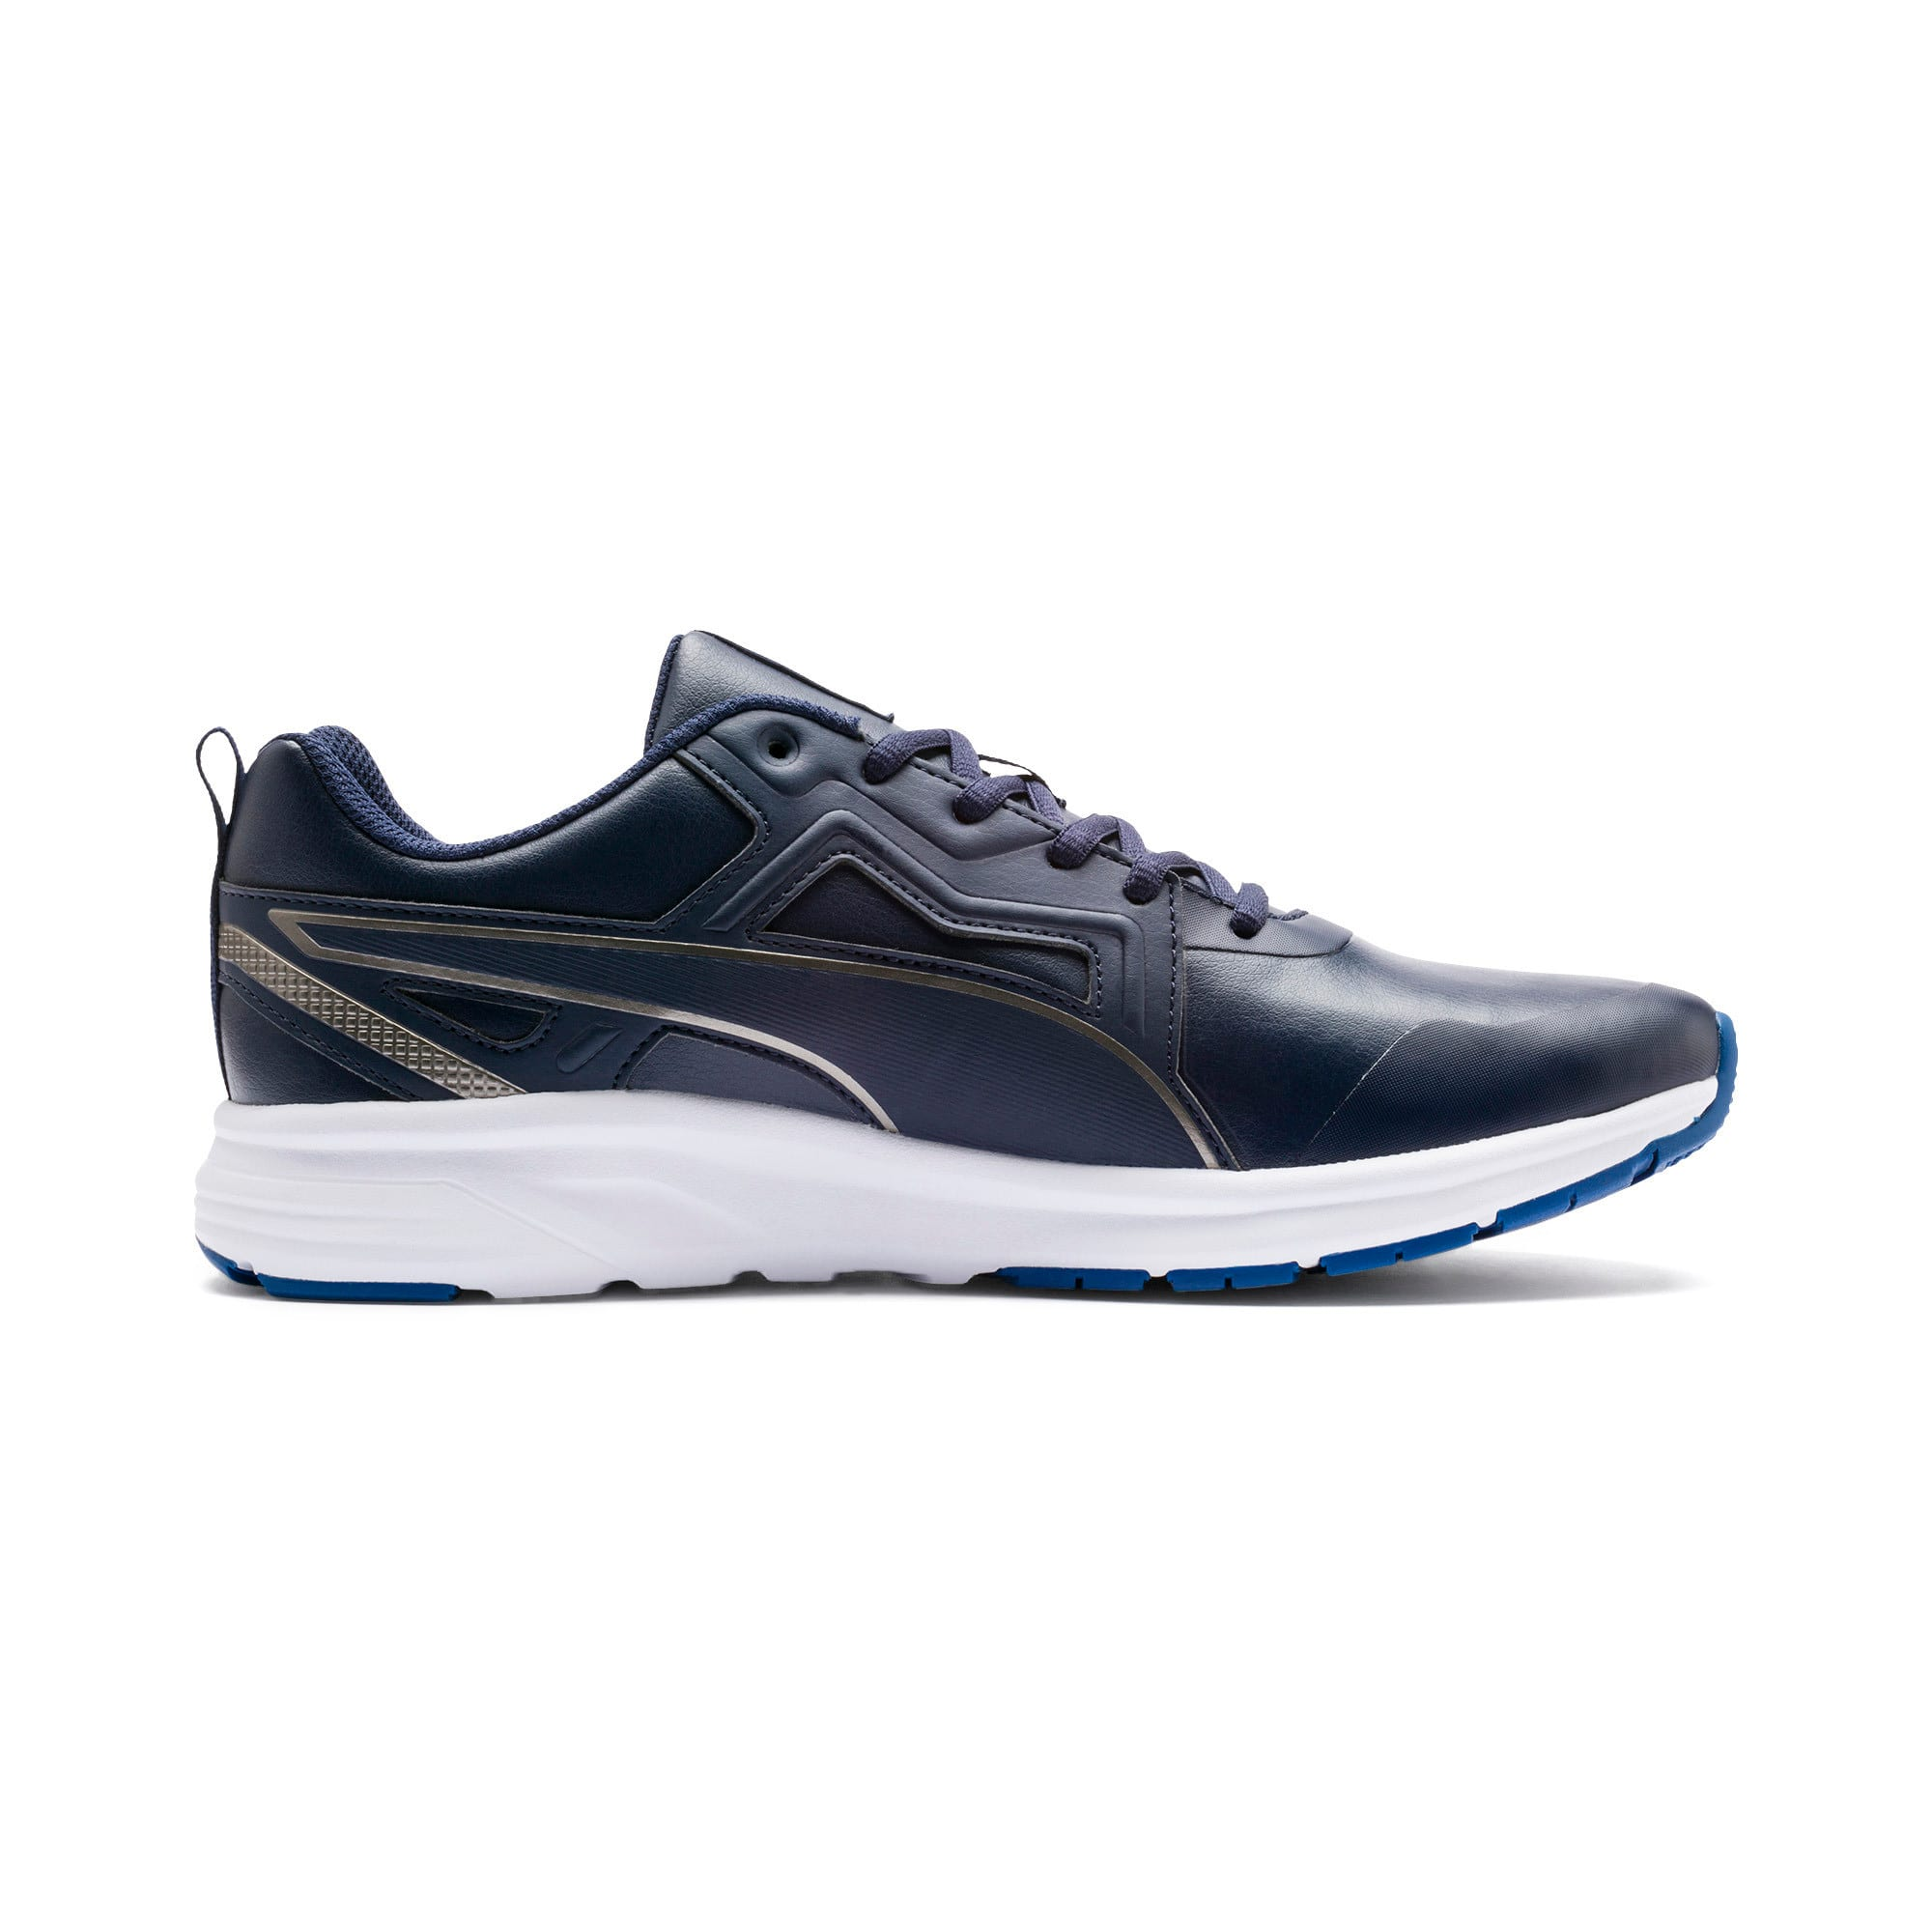 Thumbnail 7 of Pure Jogger SL Trainers, Peacoat-Silver-White-Blue, medium-IND